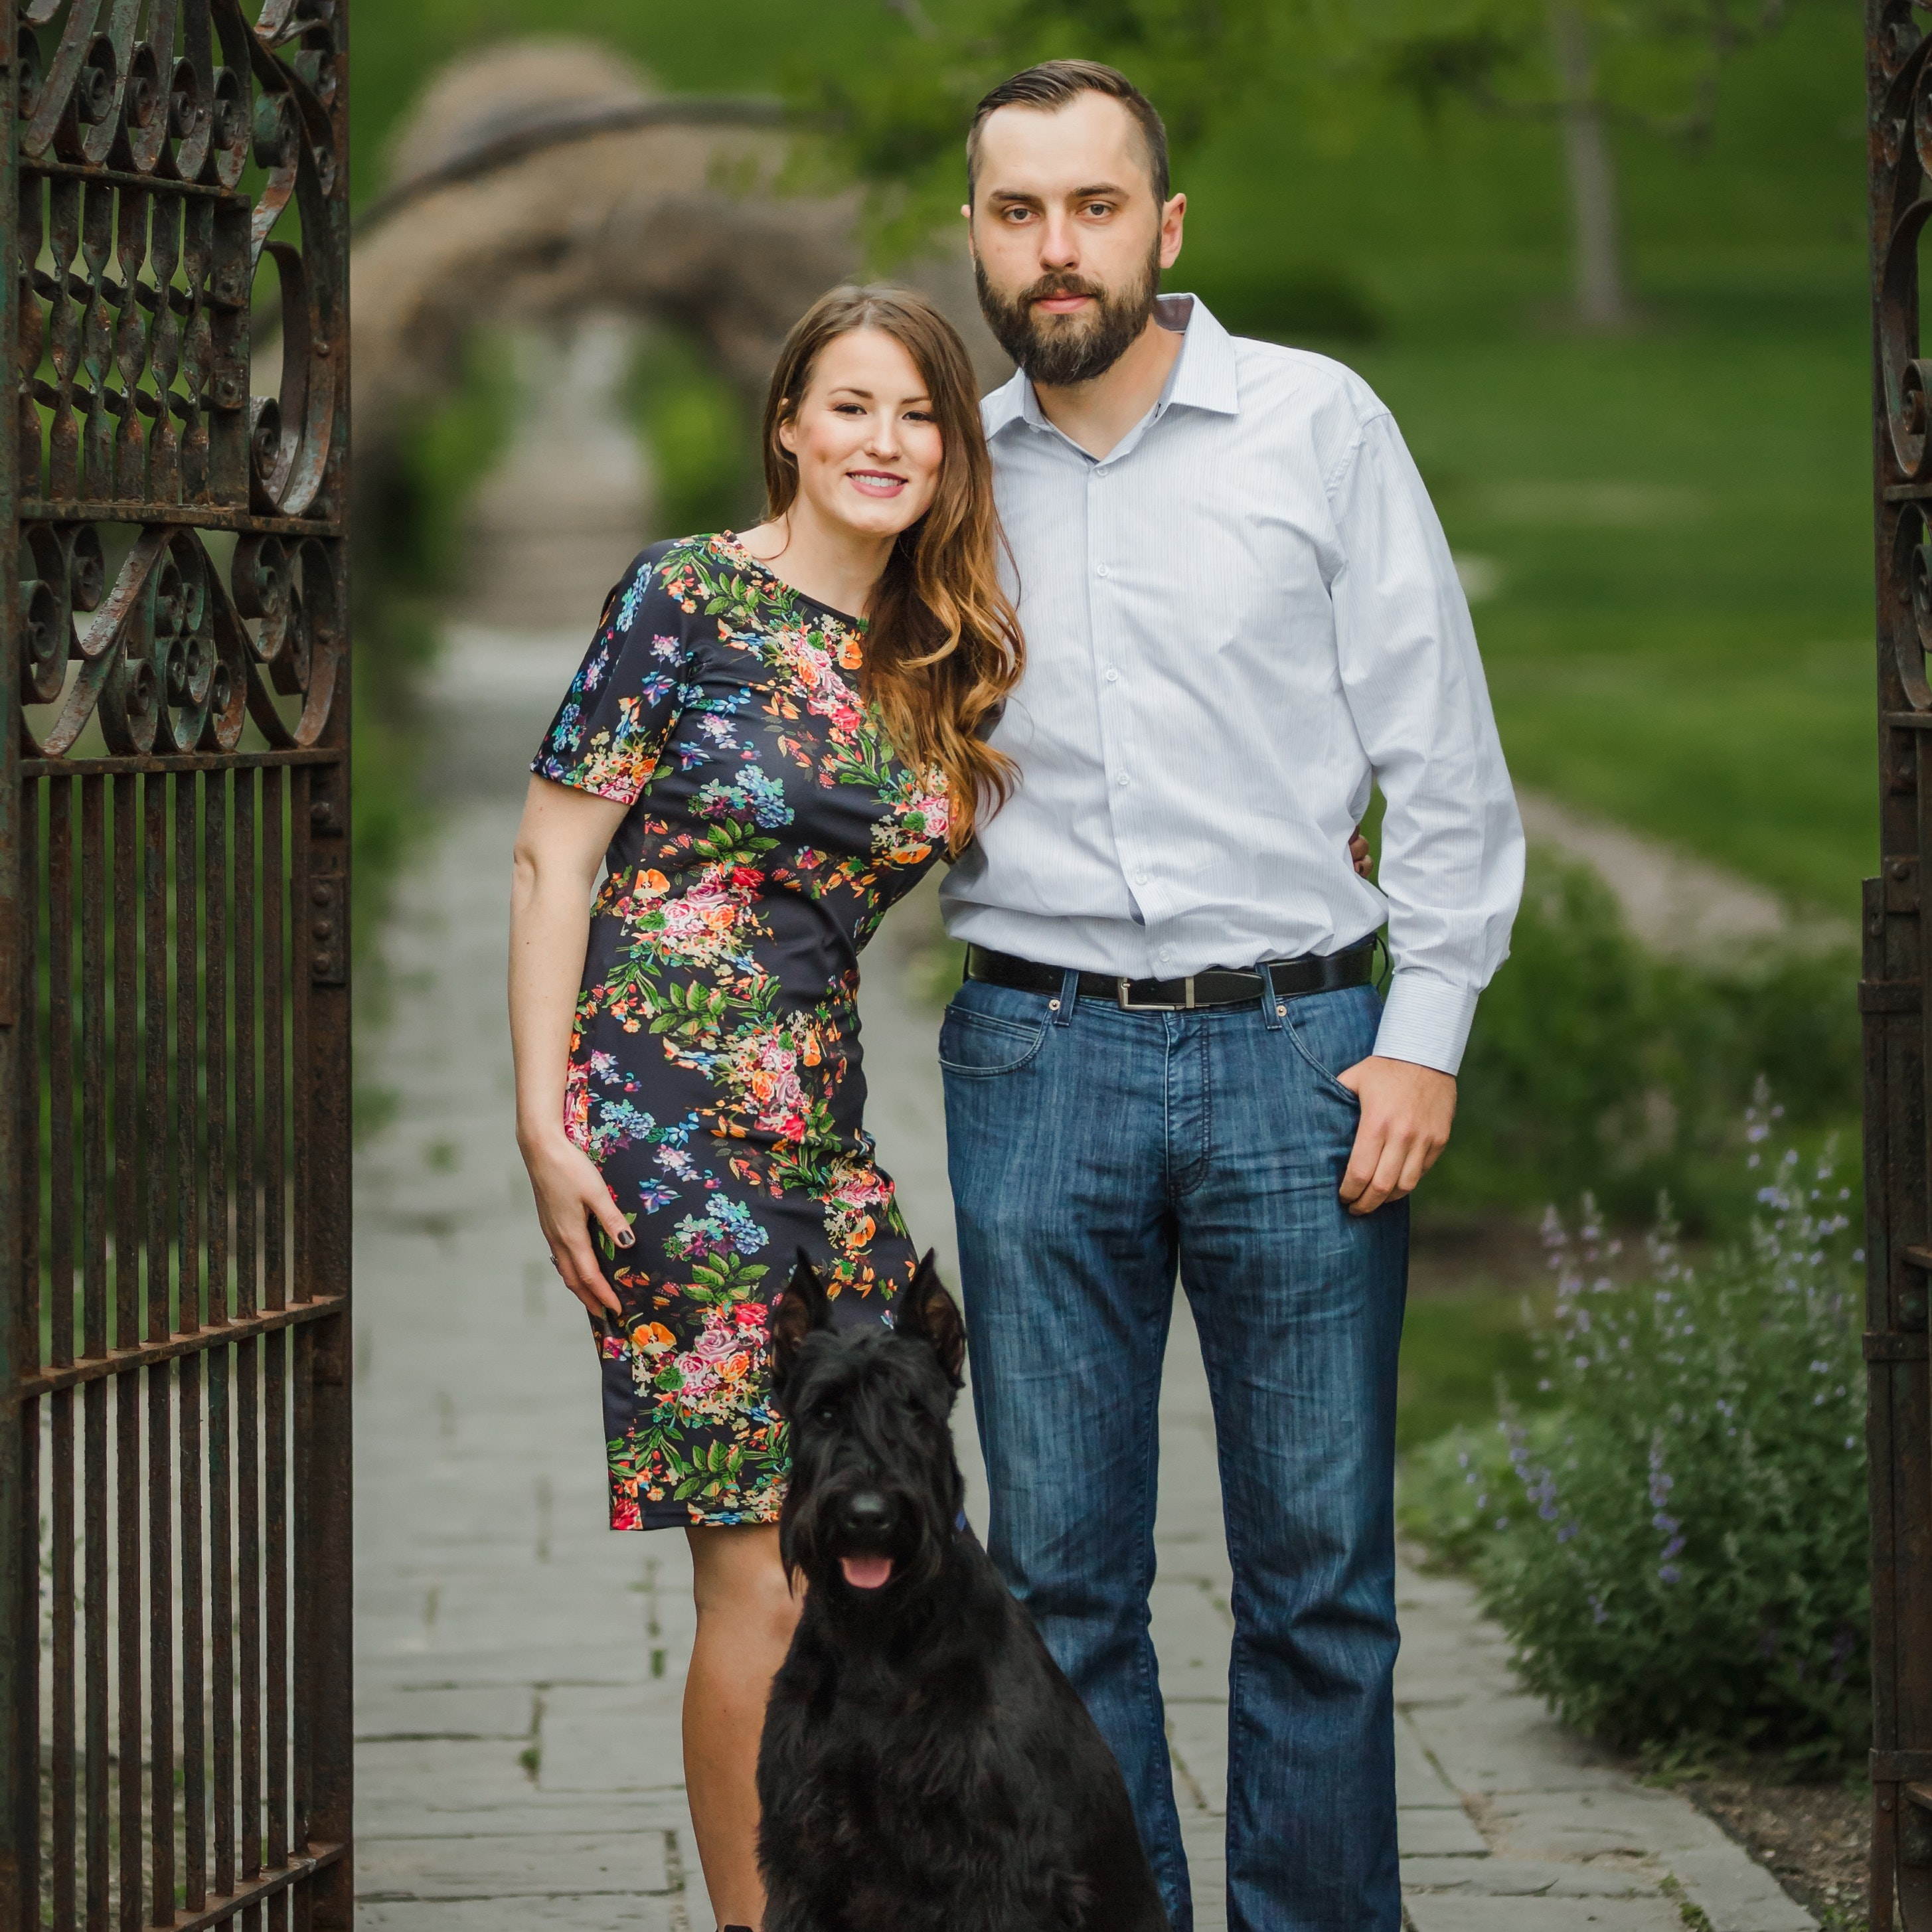 Esther & Pawel's dog day care